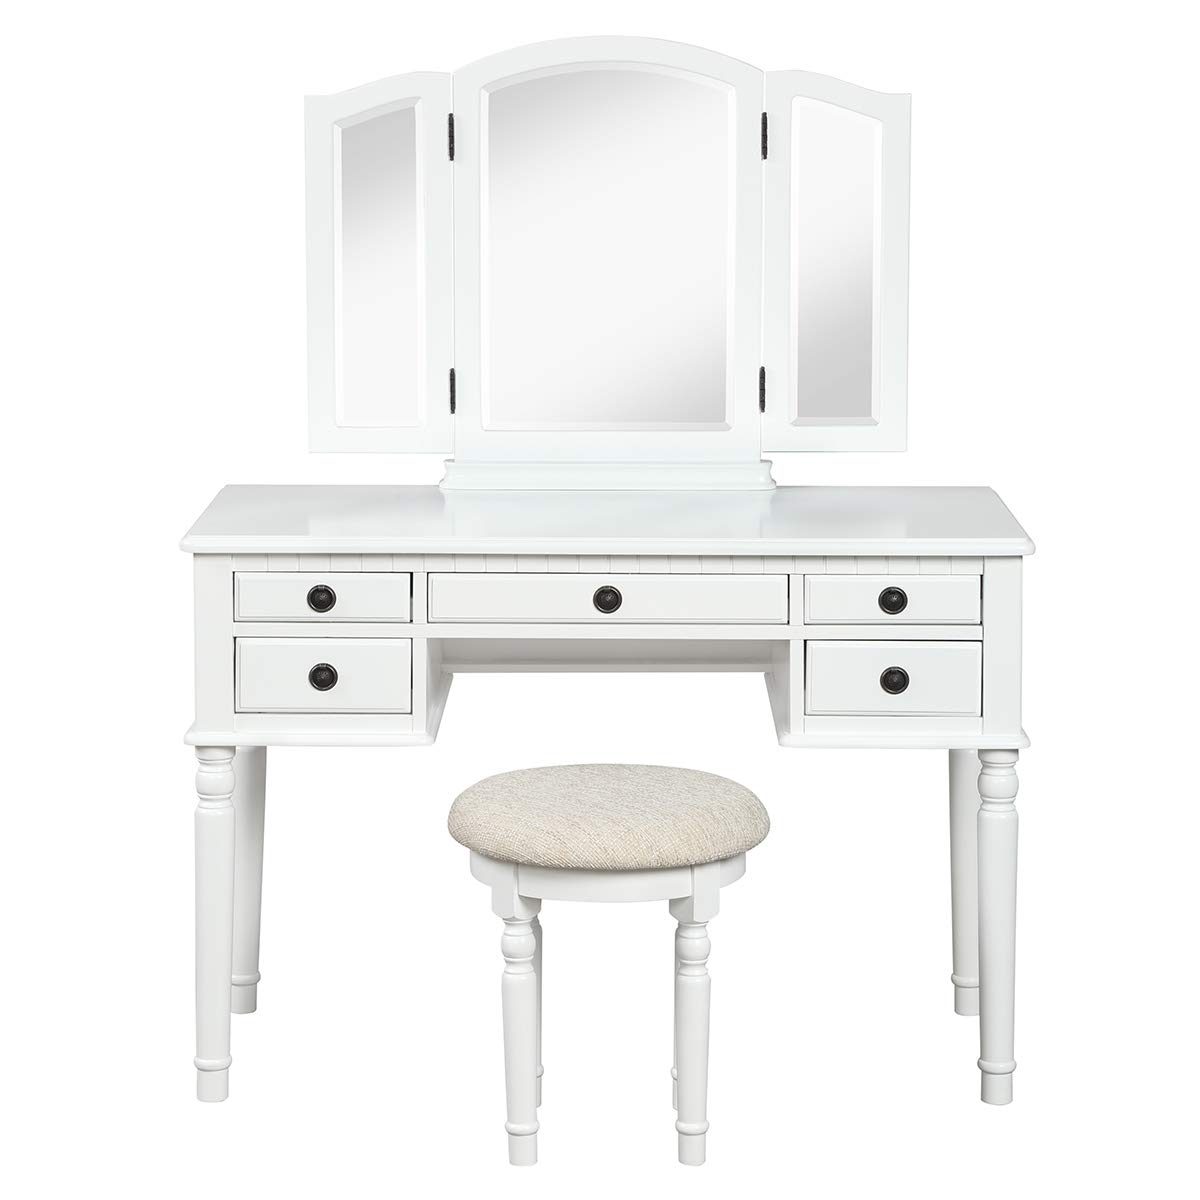 CHARMAID Vanity Set with Tri-Folding Mirror and 5 Drawers, Modern Bedroom Vanity Table with Detachable Top and 180 Rotating Mirror, Makeup Dressing Table with Cushioned Stool for Women Girls White